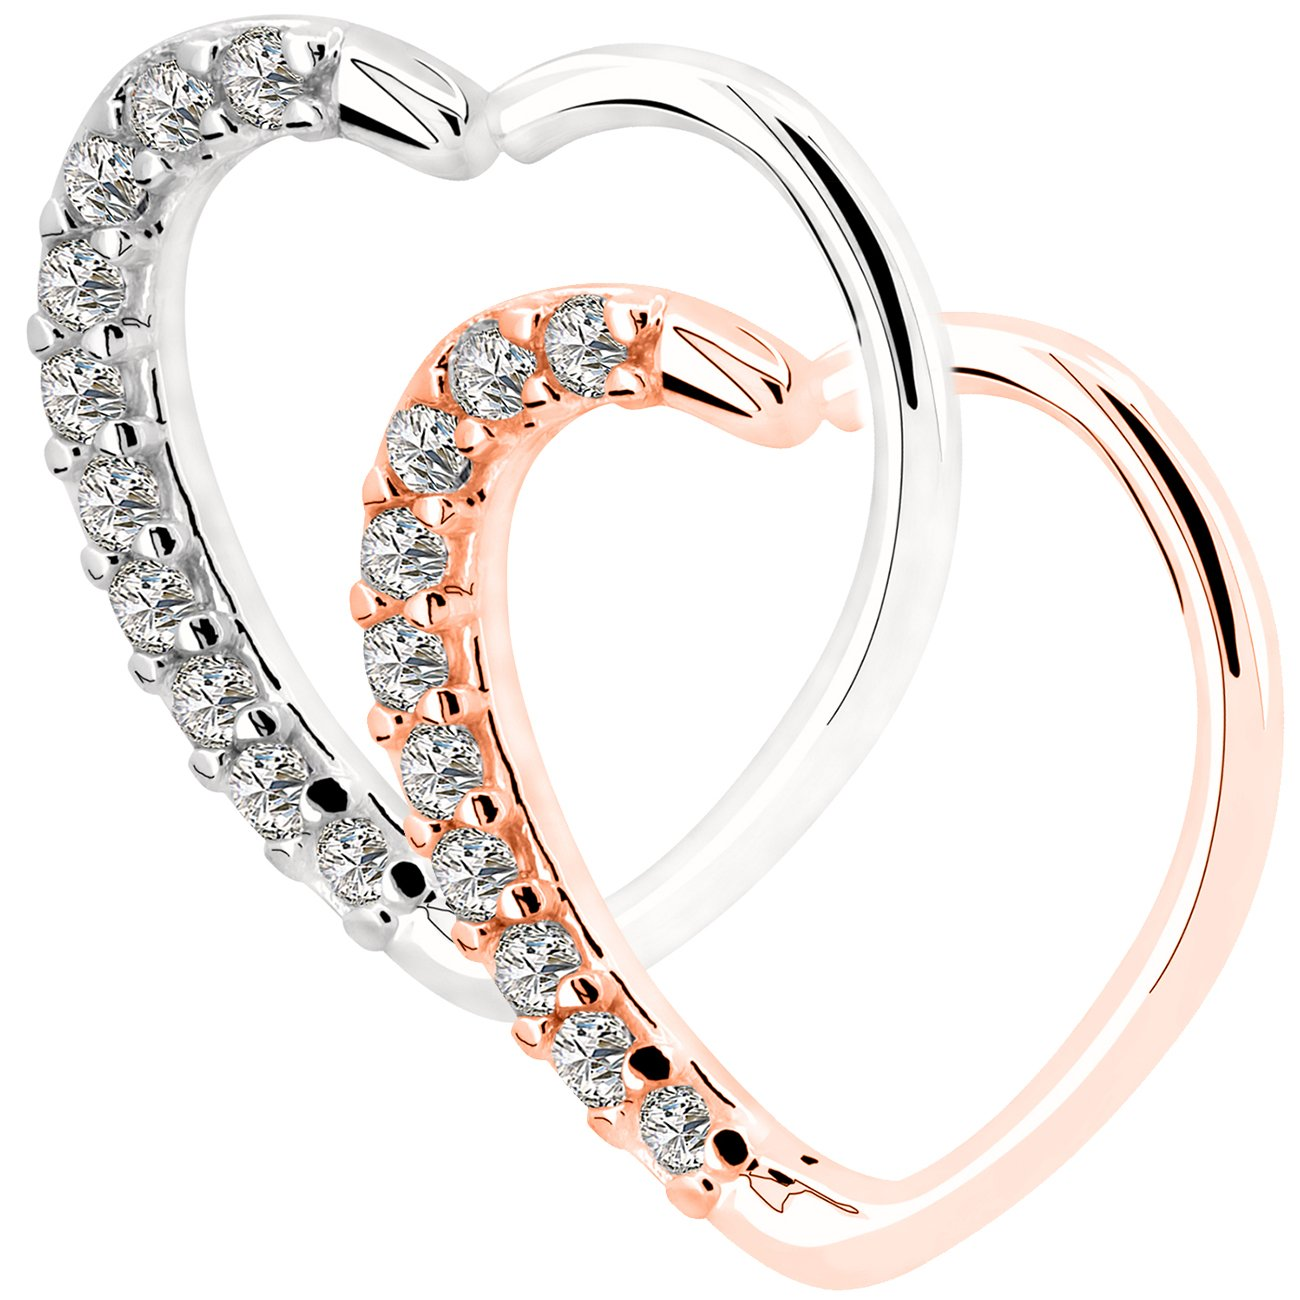 f23b084d6 Amazon.com: OUFER 2Pieces 18KT Rose Gold Clear Heart Daith Earrings  Cartilage Earring Hoop 16Gauge (1.2mm) (Style 1): Jewelry